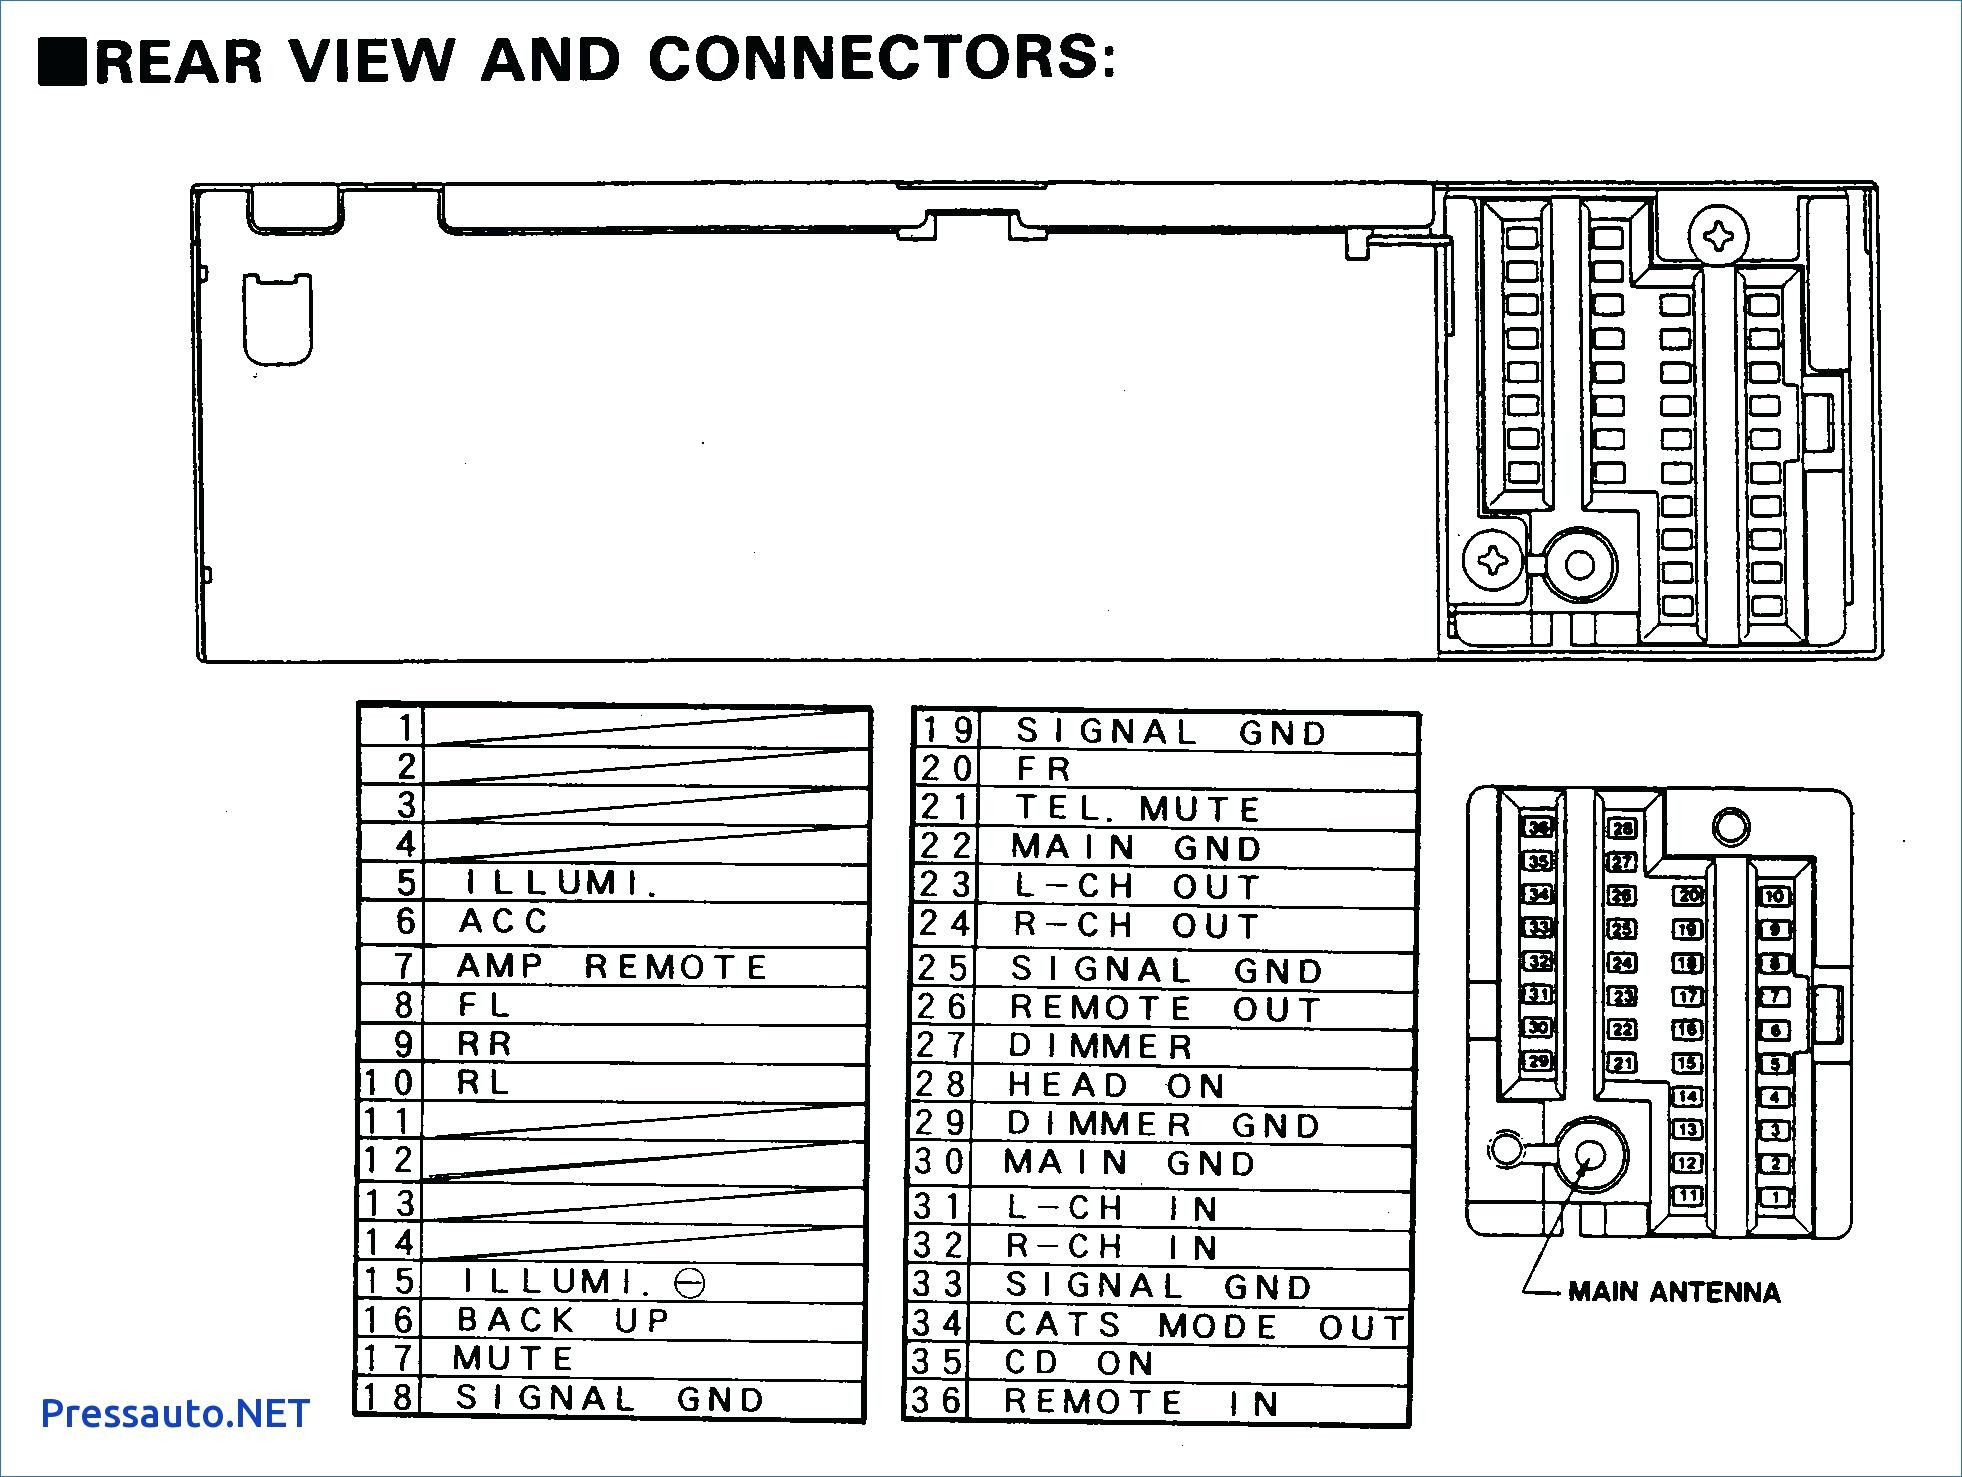 Toyota Camery Wiring Schematics Daily Update Diagram 1996 Camry Pdf I L Engine Anything Diagrams 2001